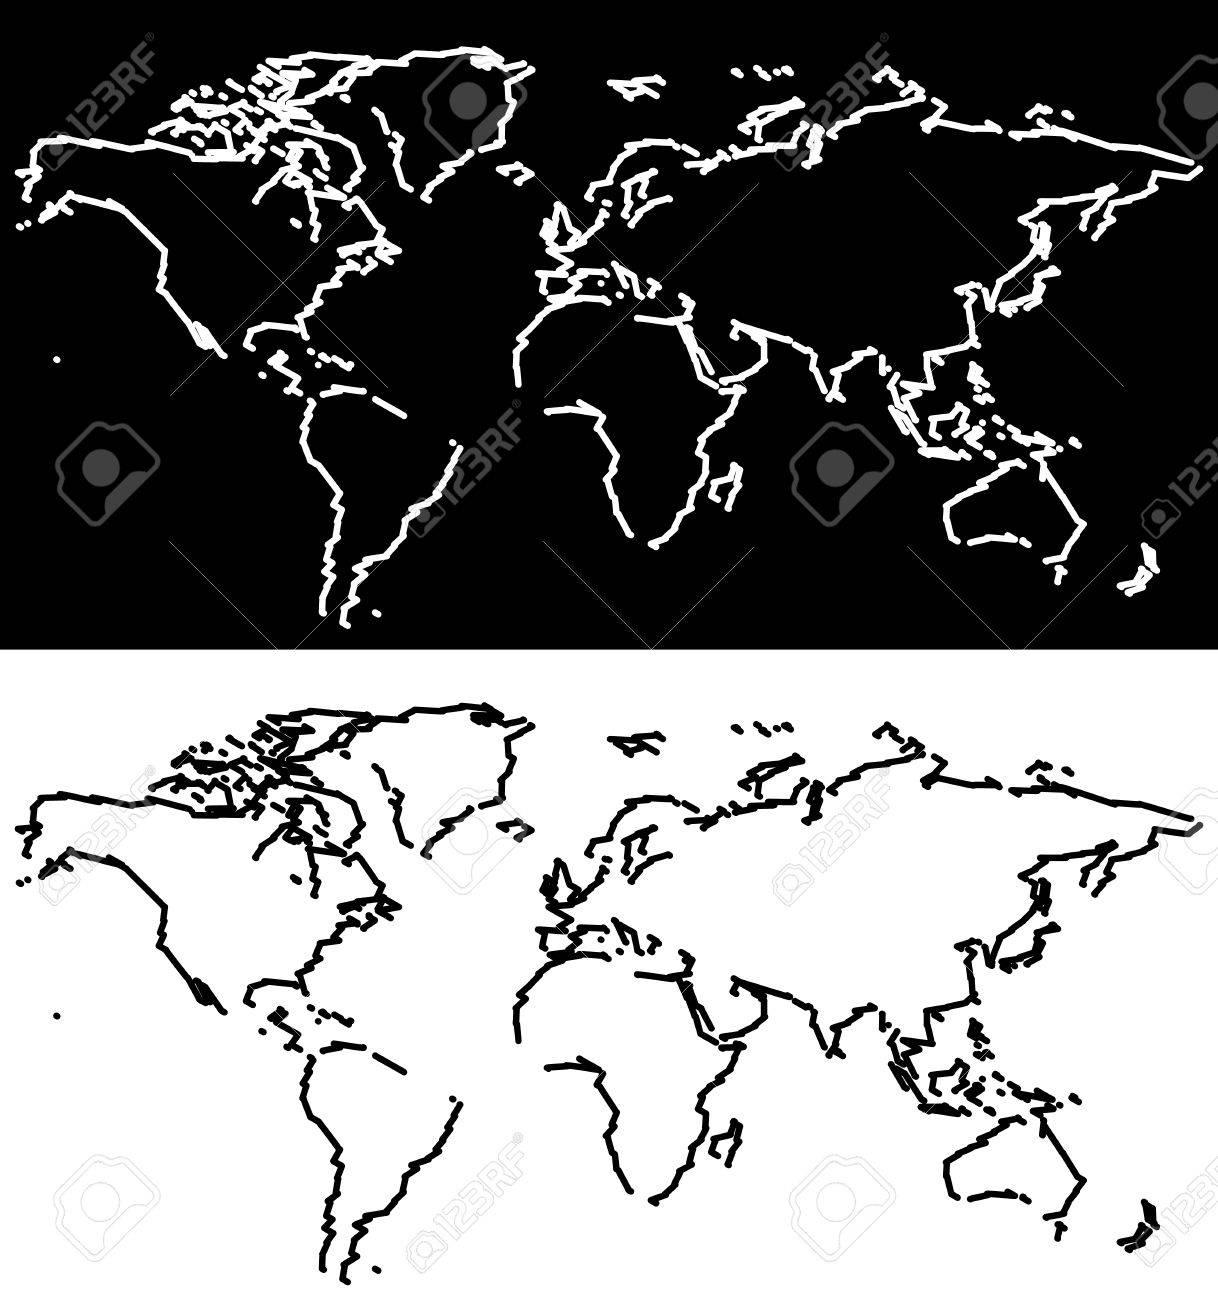 World map scribble outlines black and white royalty free cliparts world map scribble outlines black and white stock vector 35845822 gumiabroncs Gallery